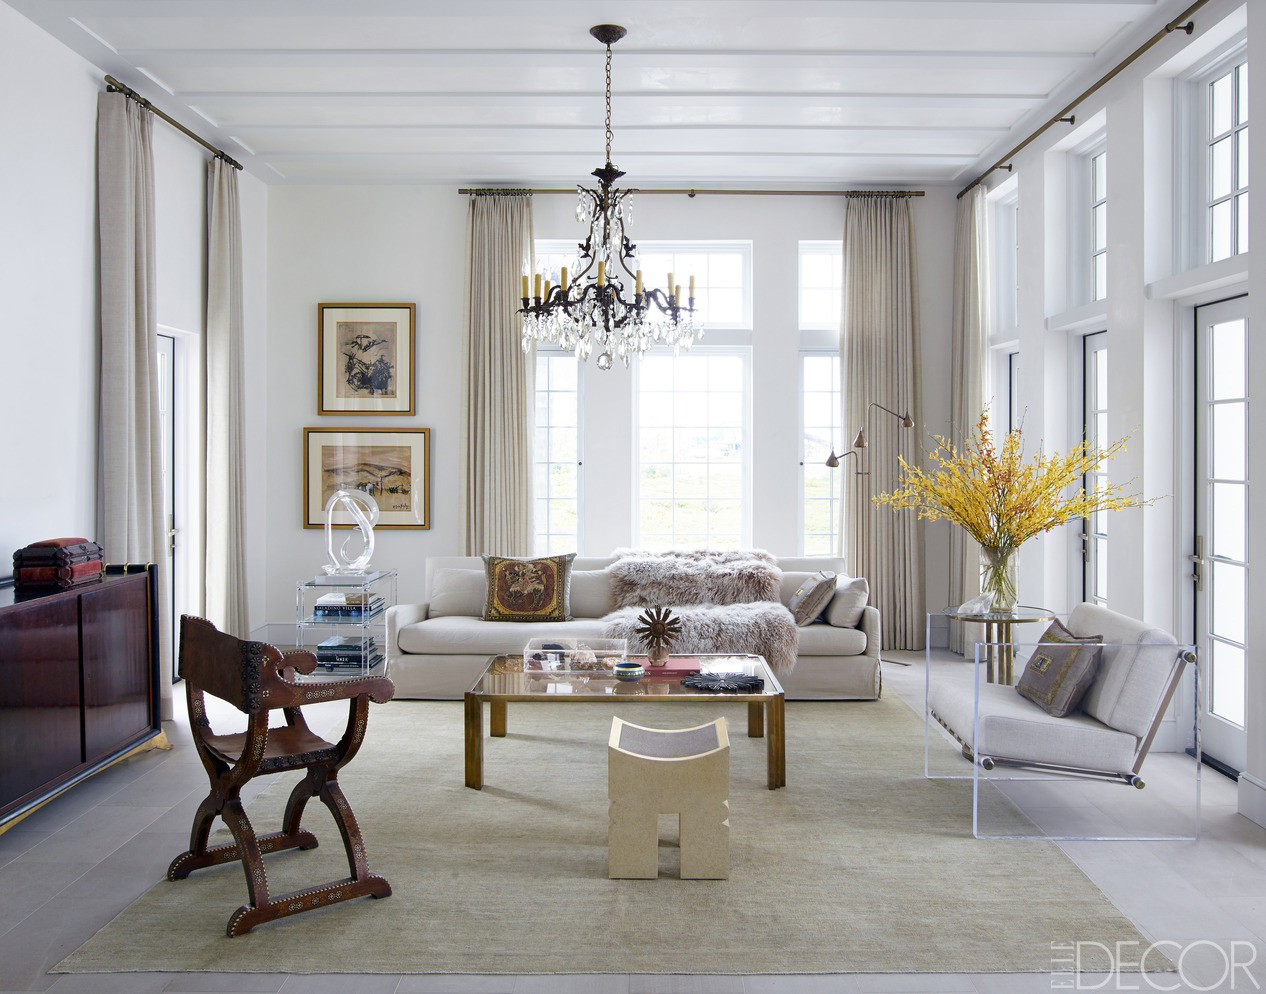 Best ideas about Decorating A Living Room . Save or Pin Chic Living Room Decorating Ideas and Design ELLE DECOR Now.